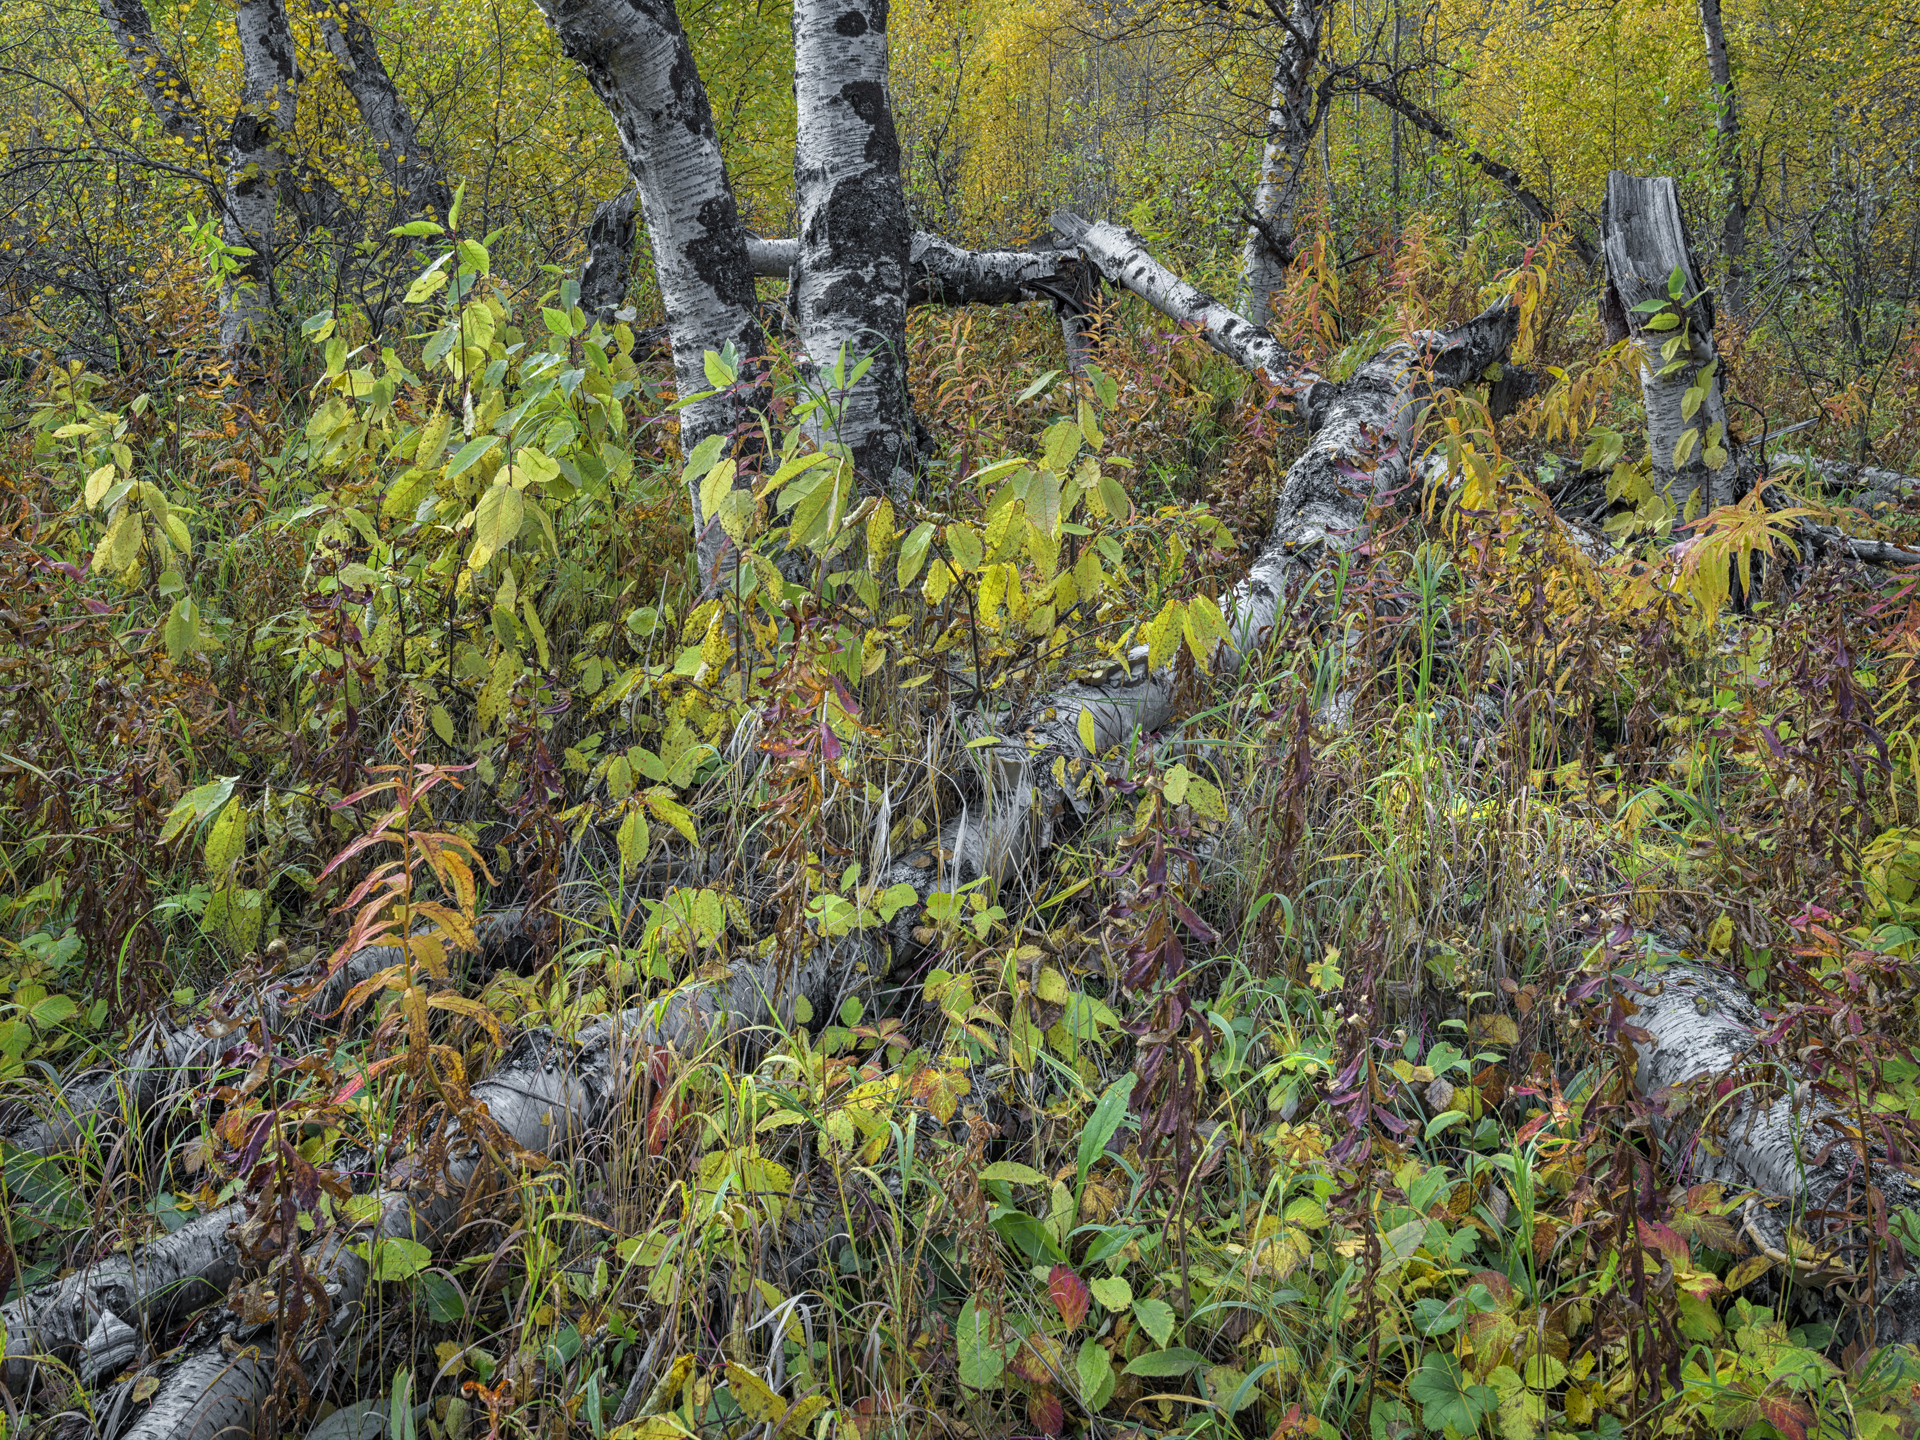 Autumn Forest, Abisko, Sweden 2017